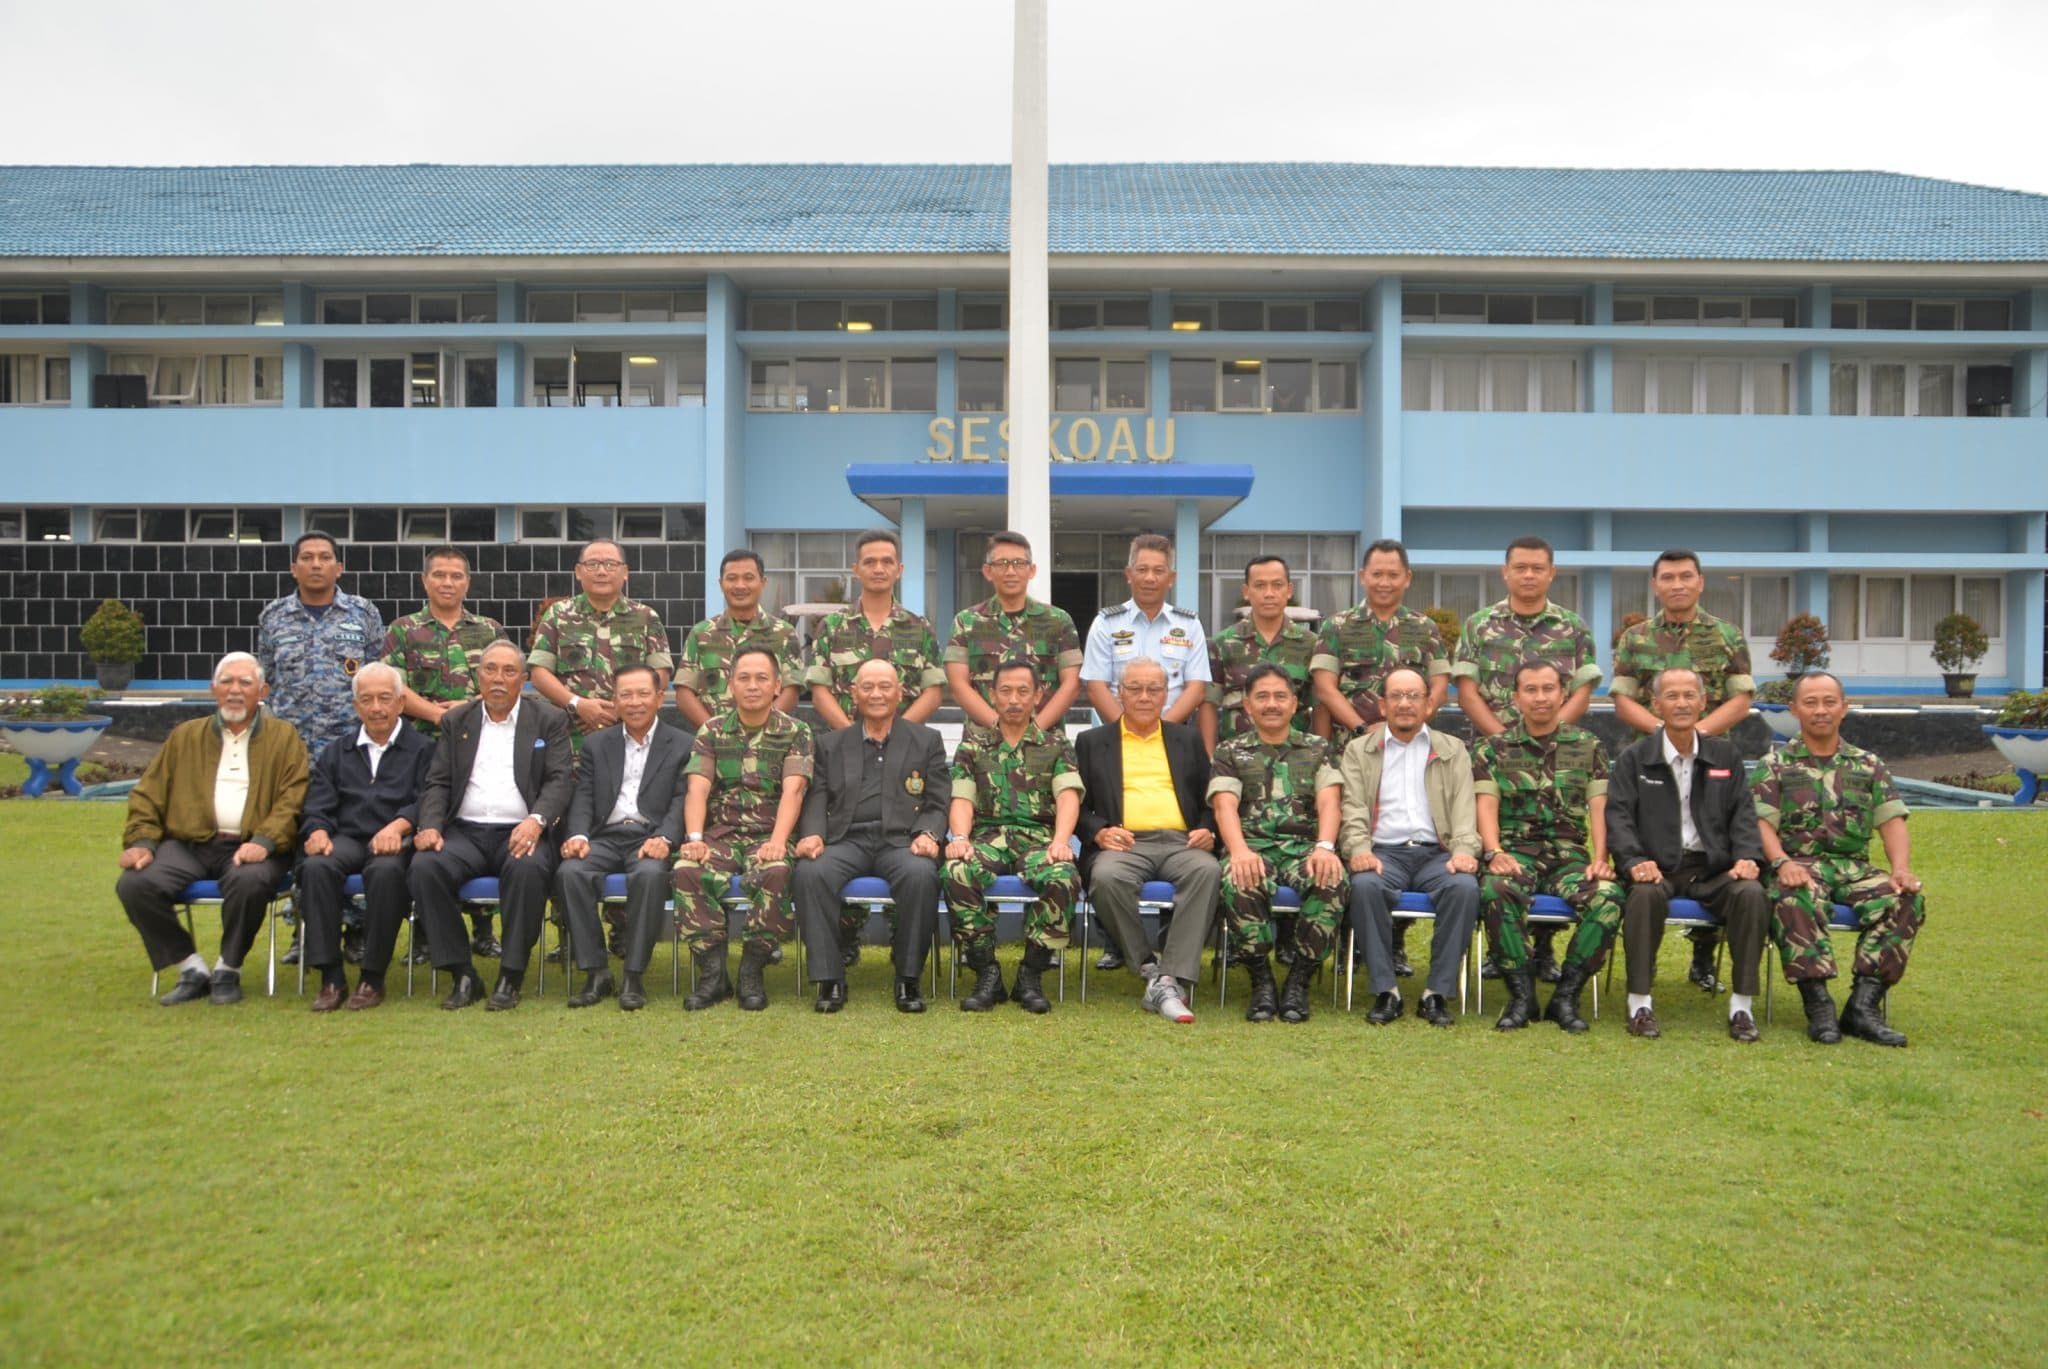 Wadanseskoau Terima Kunjungan EX-RMAF Eagles Golf Group